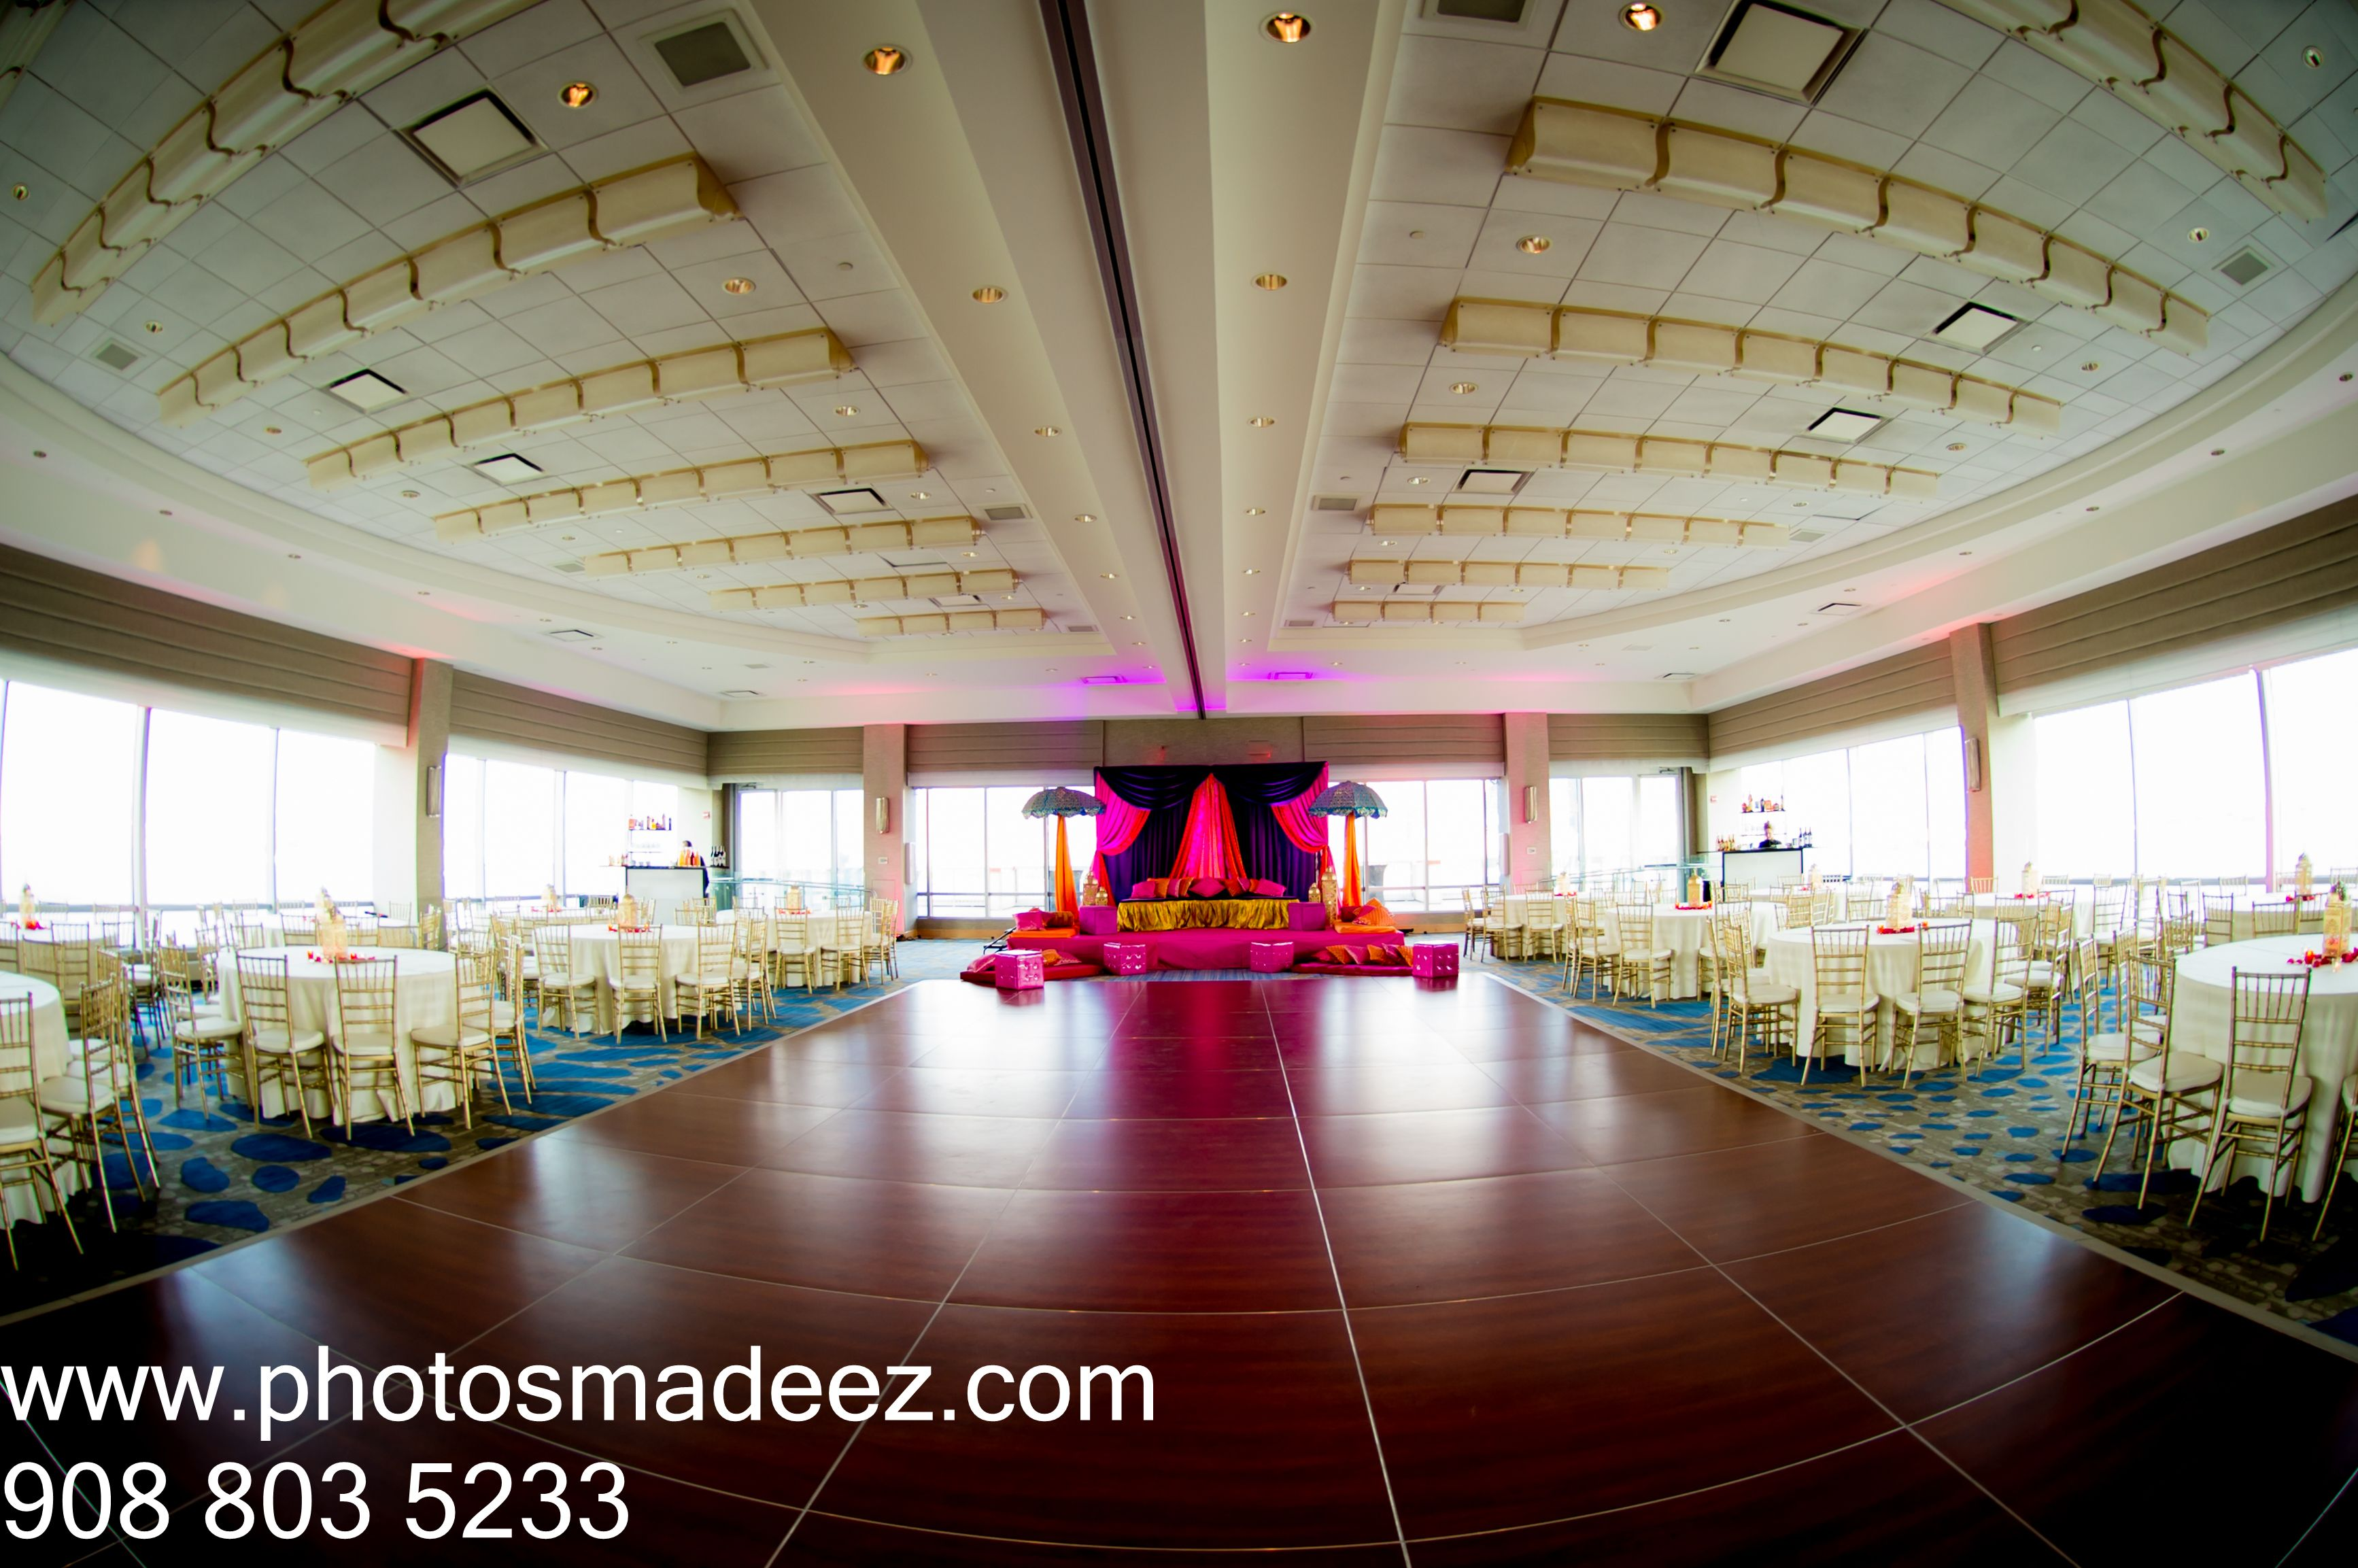 Sangeet Decor by Design House Decor for Punjabi wedding at The Hyatt Jersey CIty - Indian Wedding. Hindu Wedding Best Wedding Photographer PhotosMadeEz, Award winning photographer Mou Mukherjee. #subinandmehak